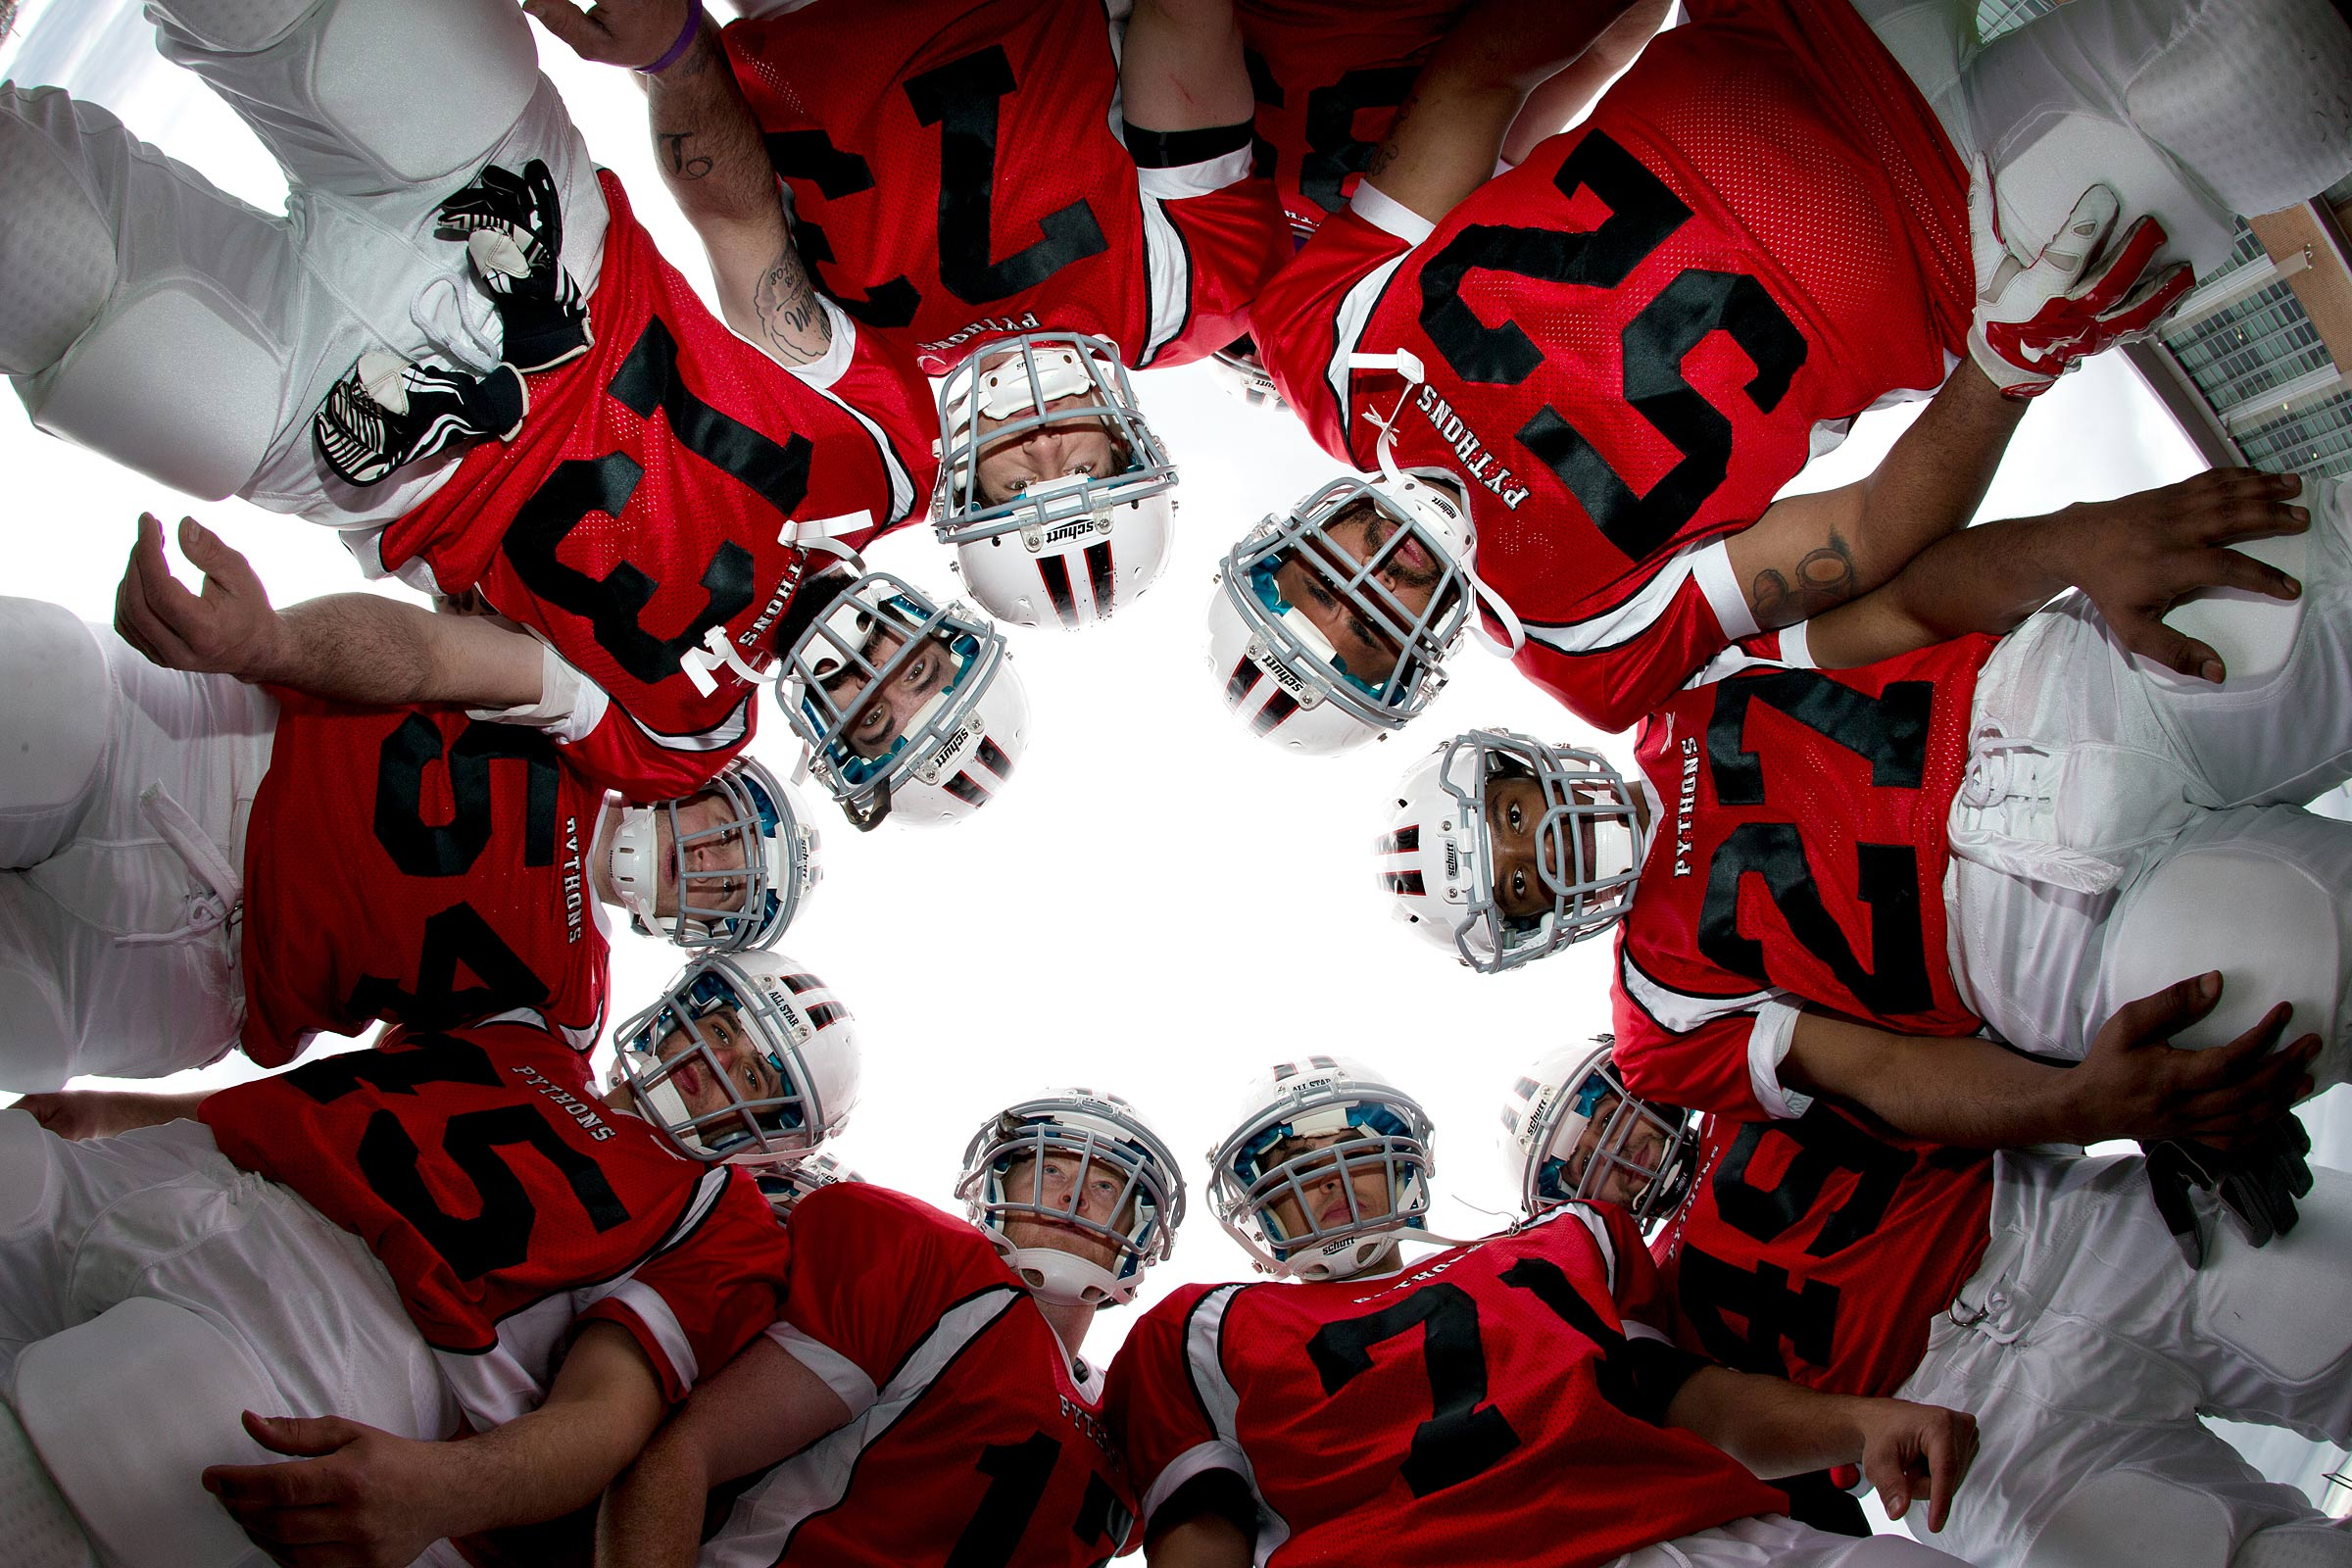 A low angle  view from inside the huddle showing the team from below.